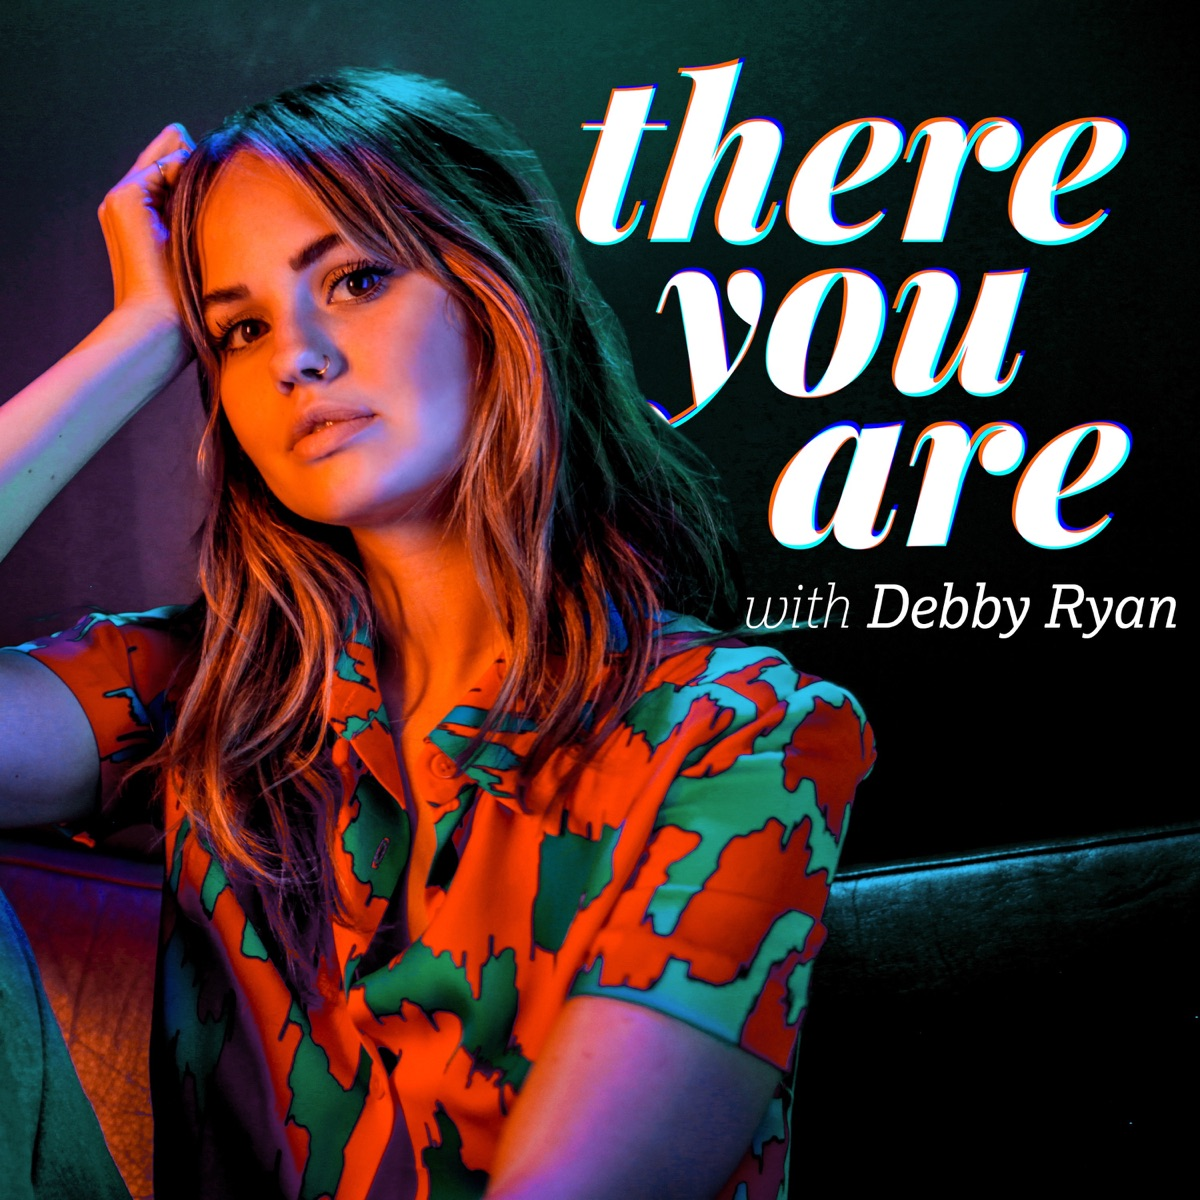 There You Are with Debby Ryan